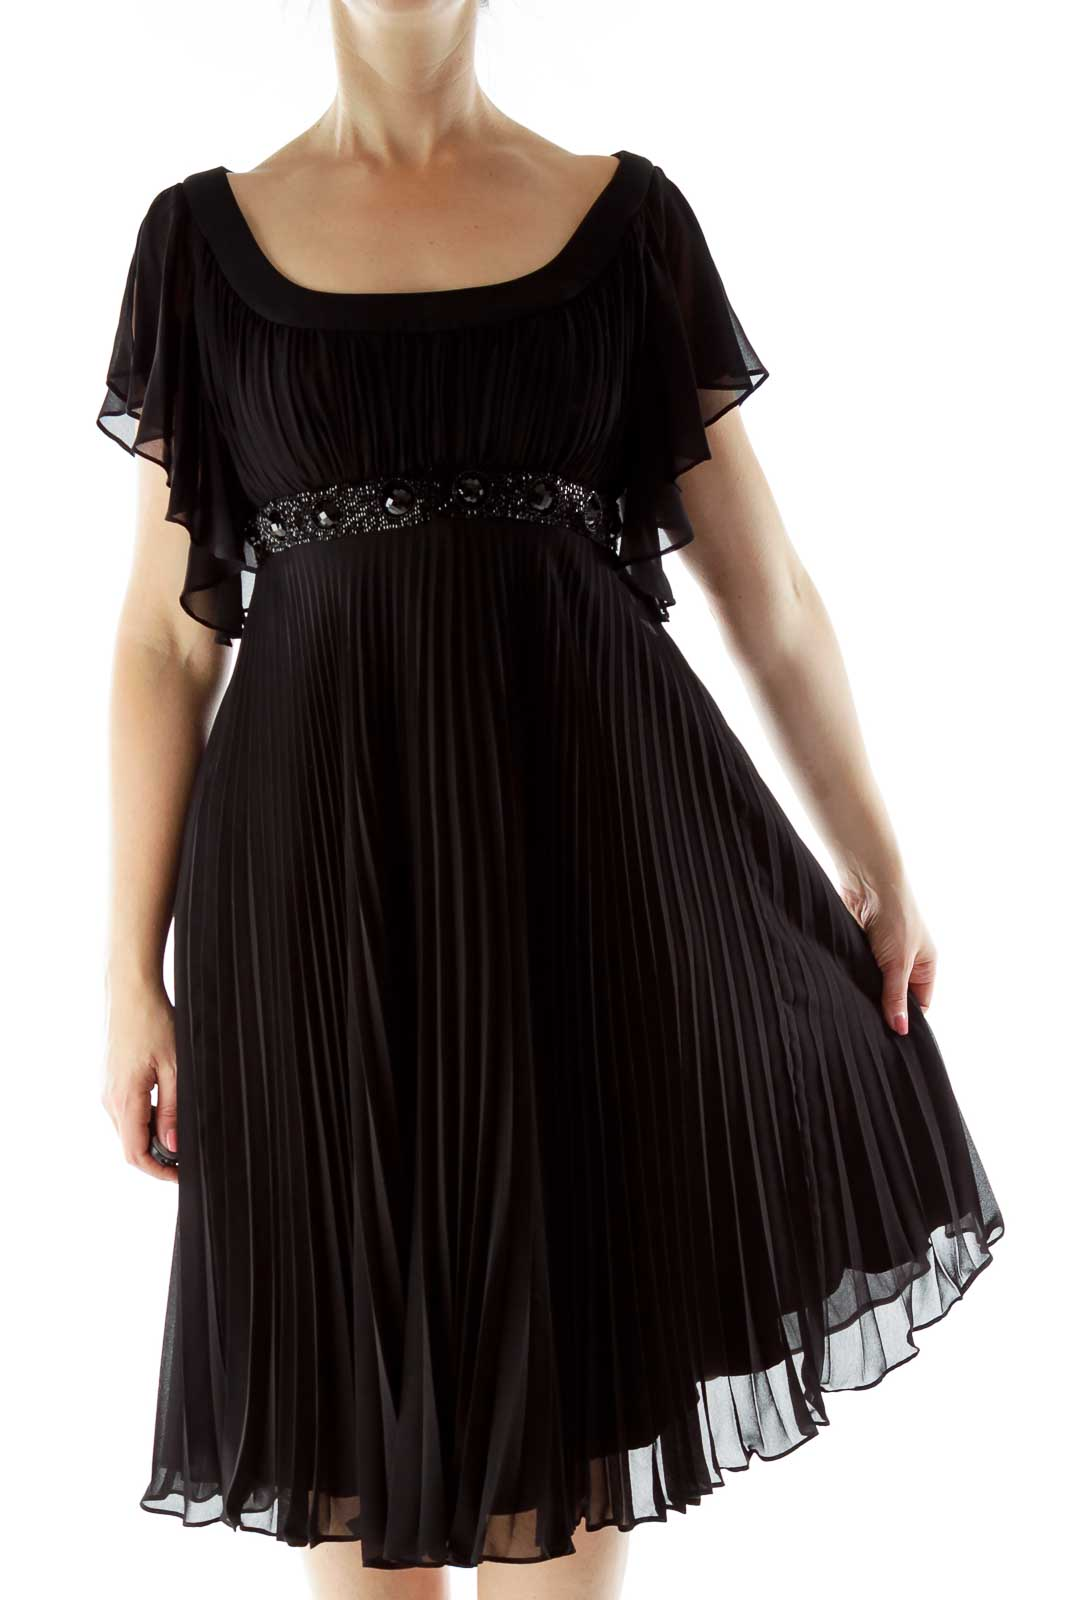 Black Beaded Evening Dress Front